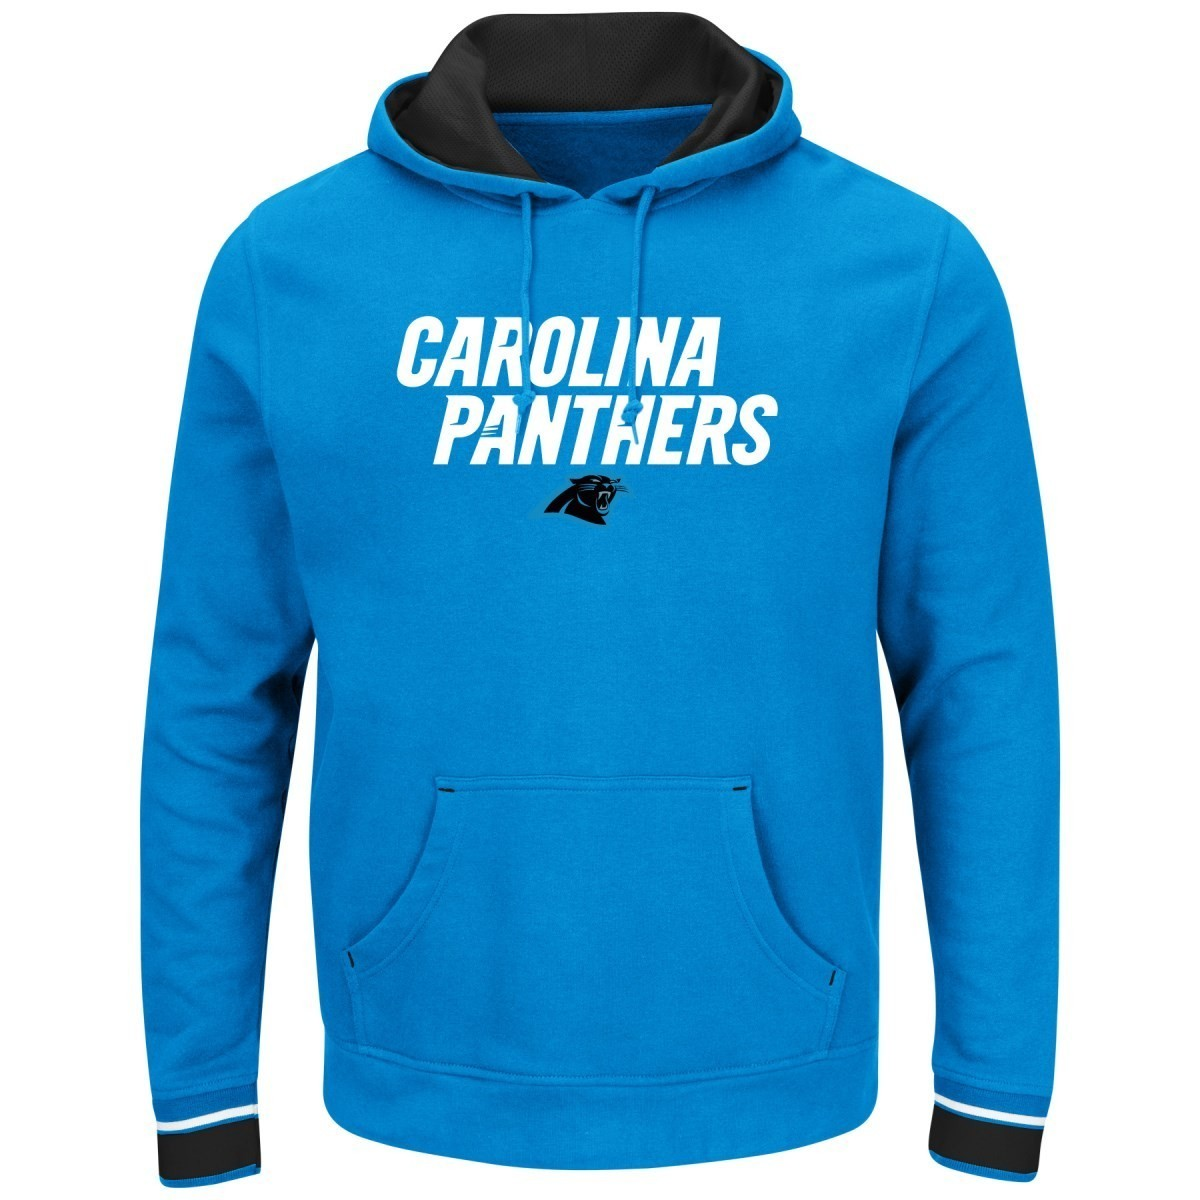 Carolina panthers hoodies